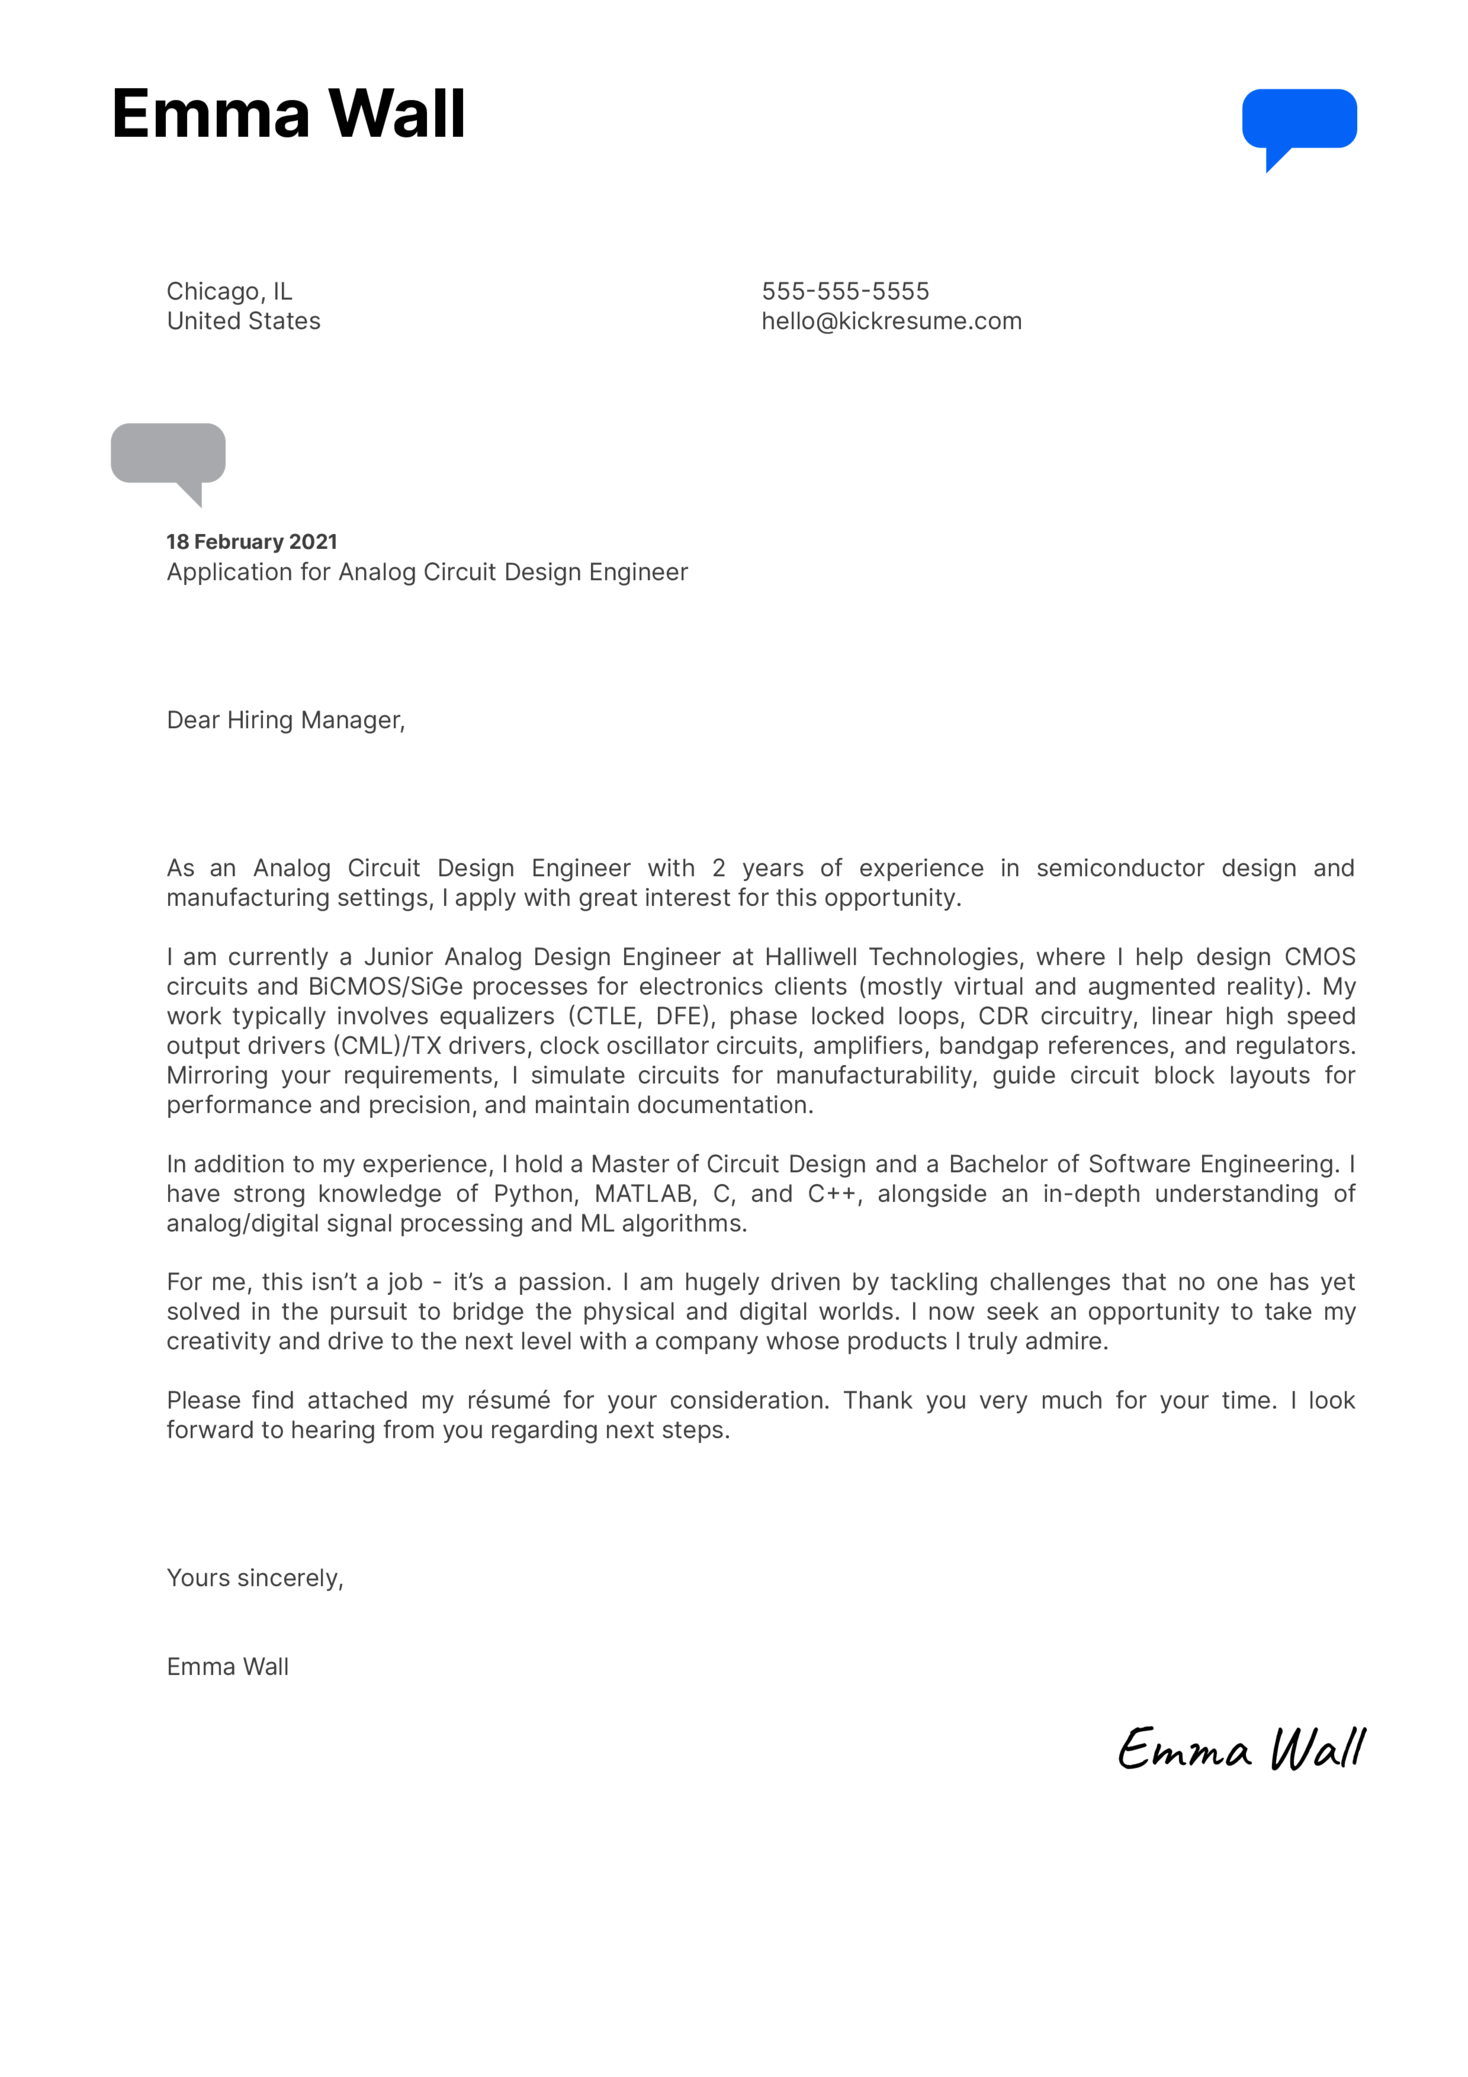 Analog Circuit Design Engineer Cover Letter Sample